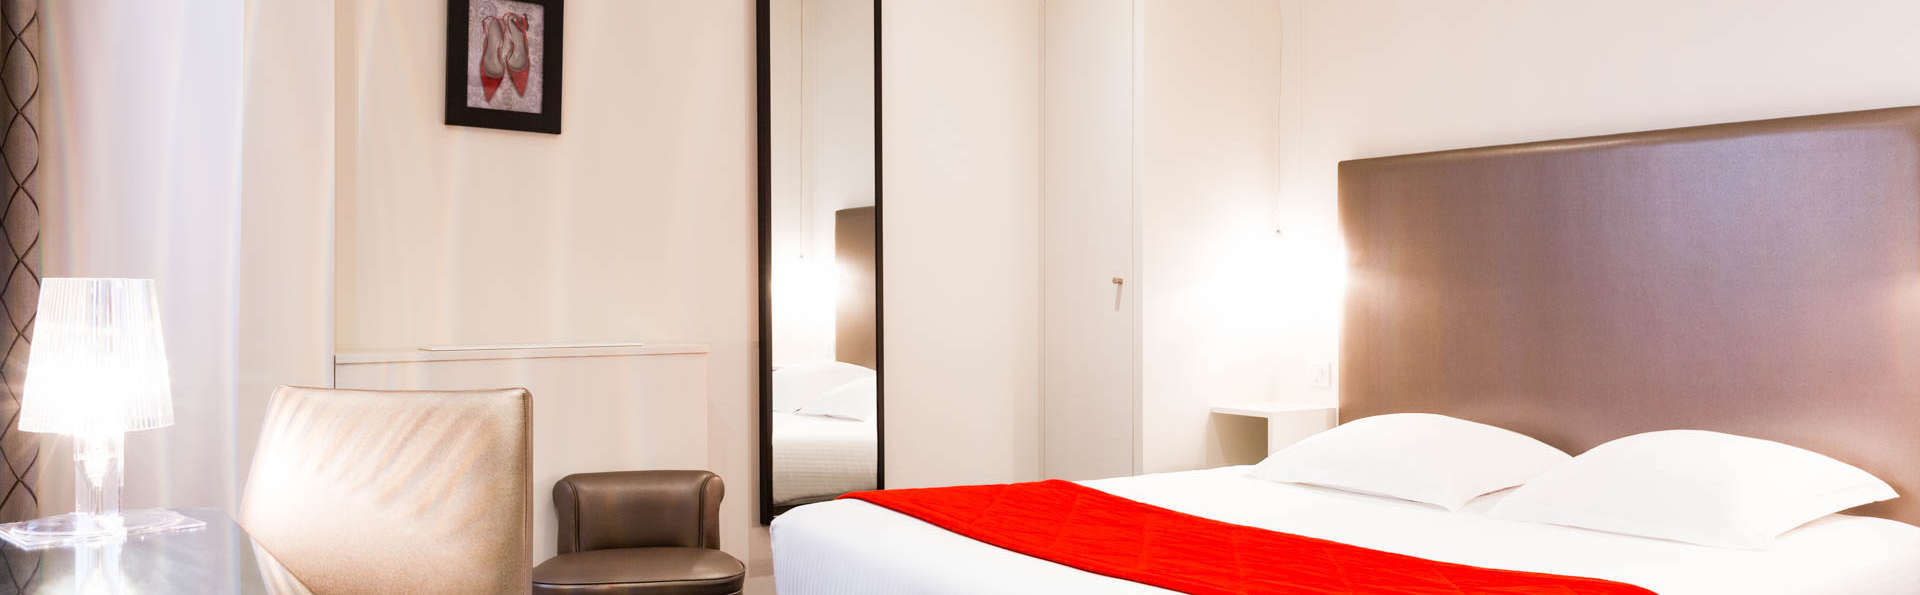 The Originals Boutique, Hôtel des Princes, Strasbourg Centre (Qualys-Hotel) - EDIT_NEW_ROOM7.jpg